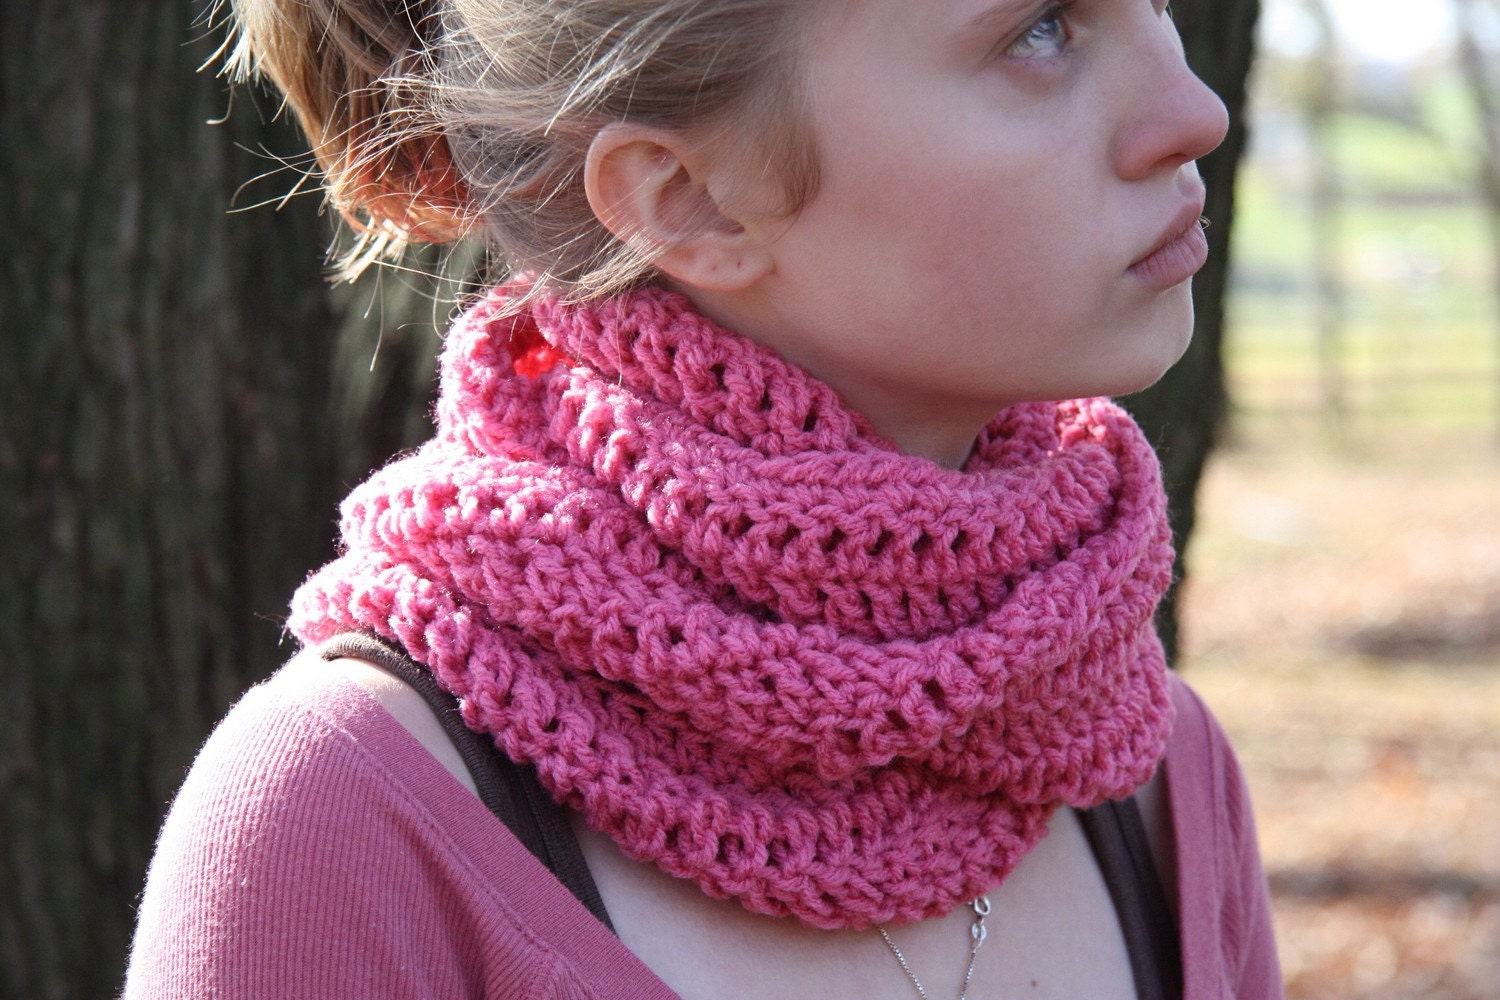 Pink Crocheted Eternity Cowl Neck Scarf by HandmadeByLarrie Cowl Neck Scarves Crochet